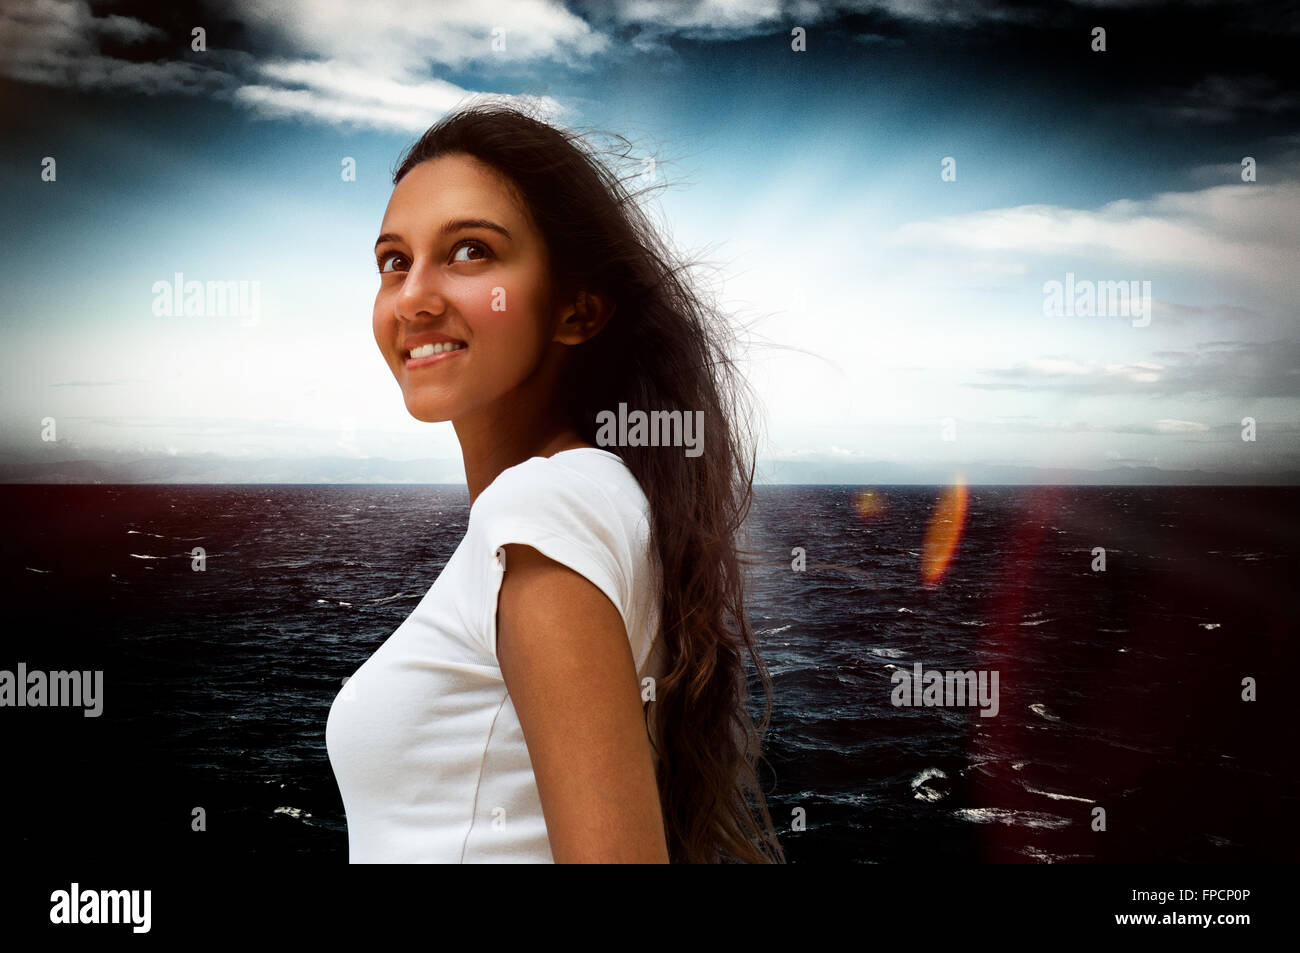 Smiling attractive young Indian woman standing looking up into the air with a dreamy expression against a dark dramatic Stock Photo